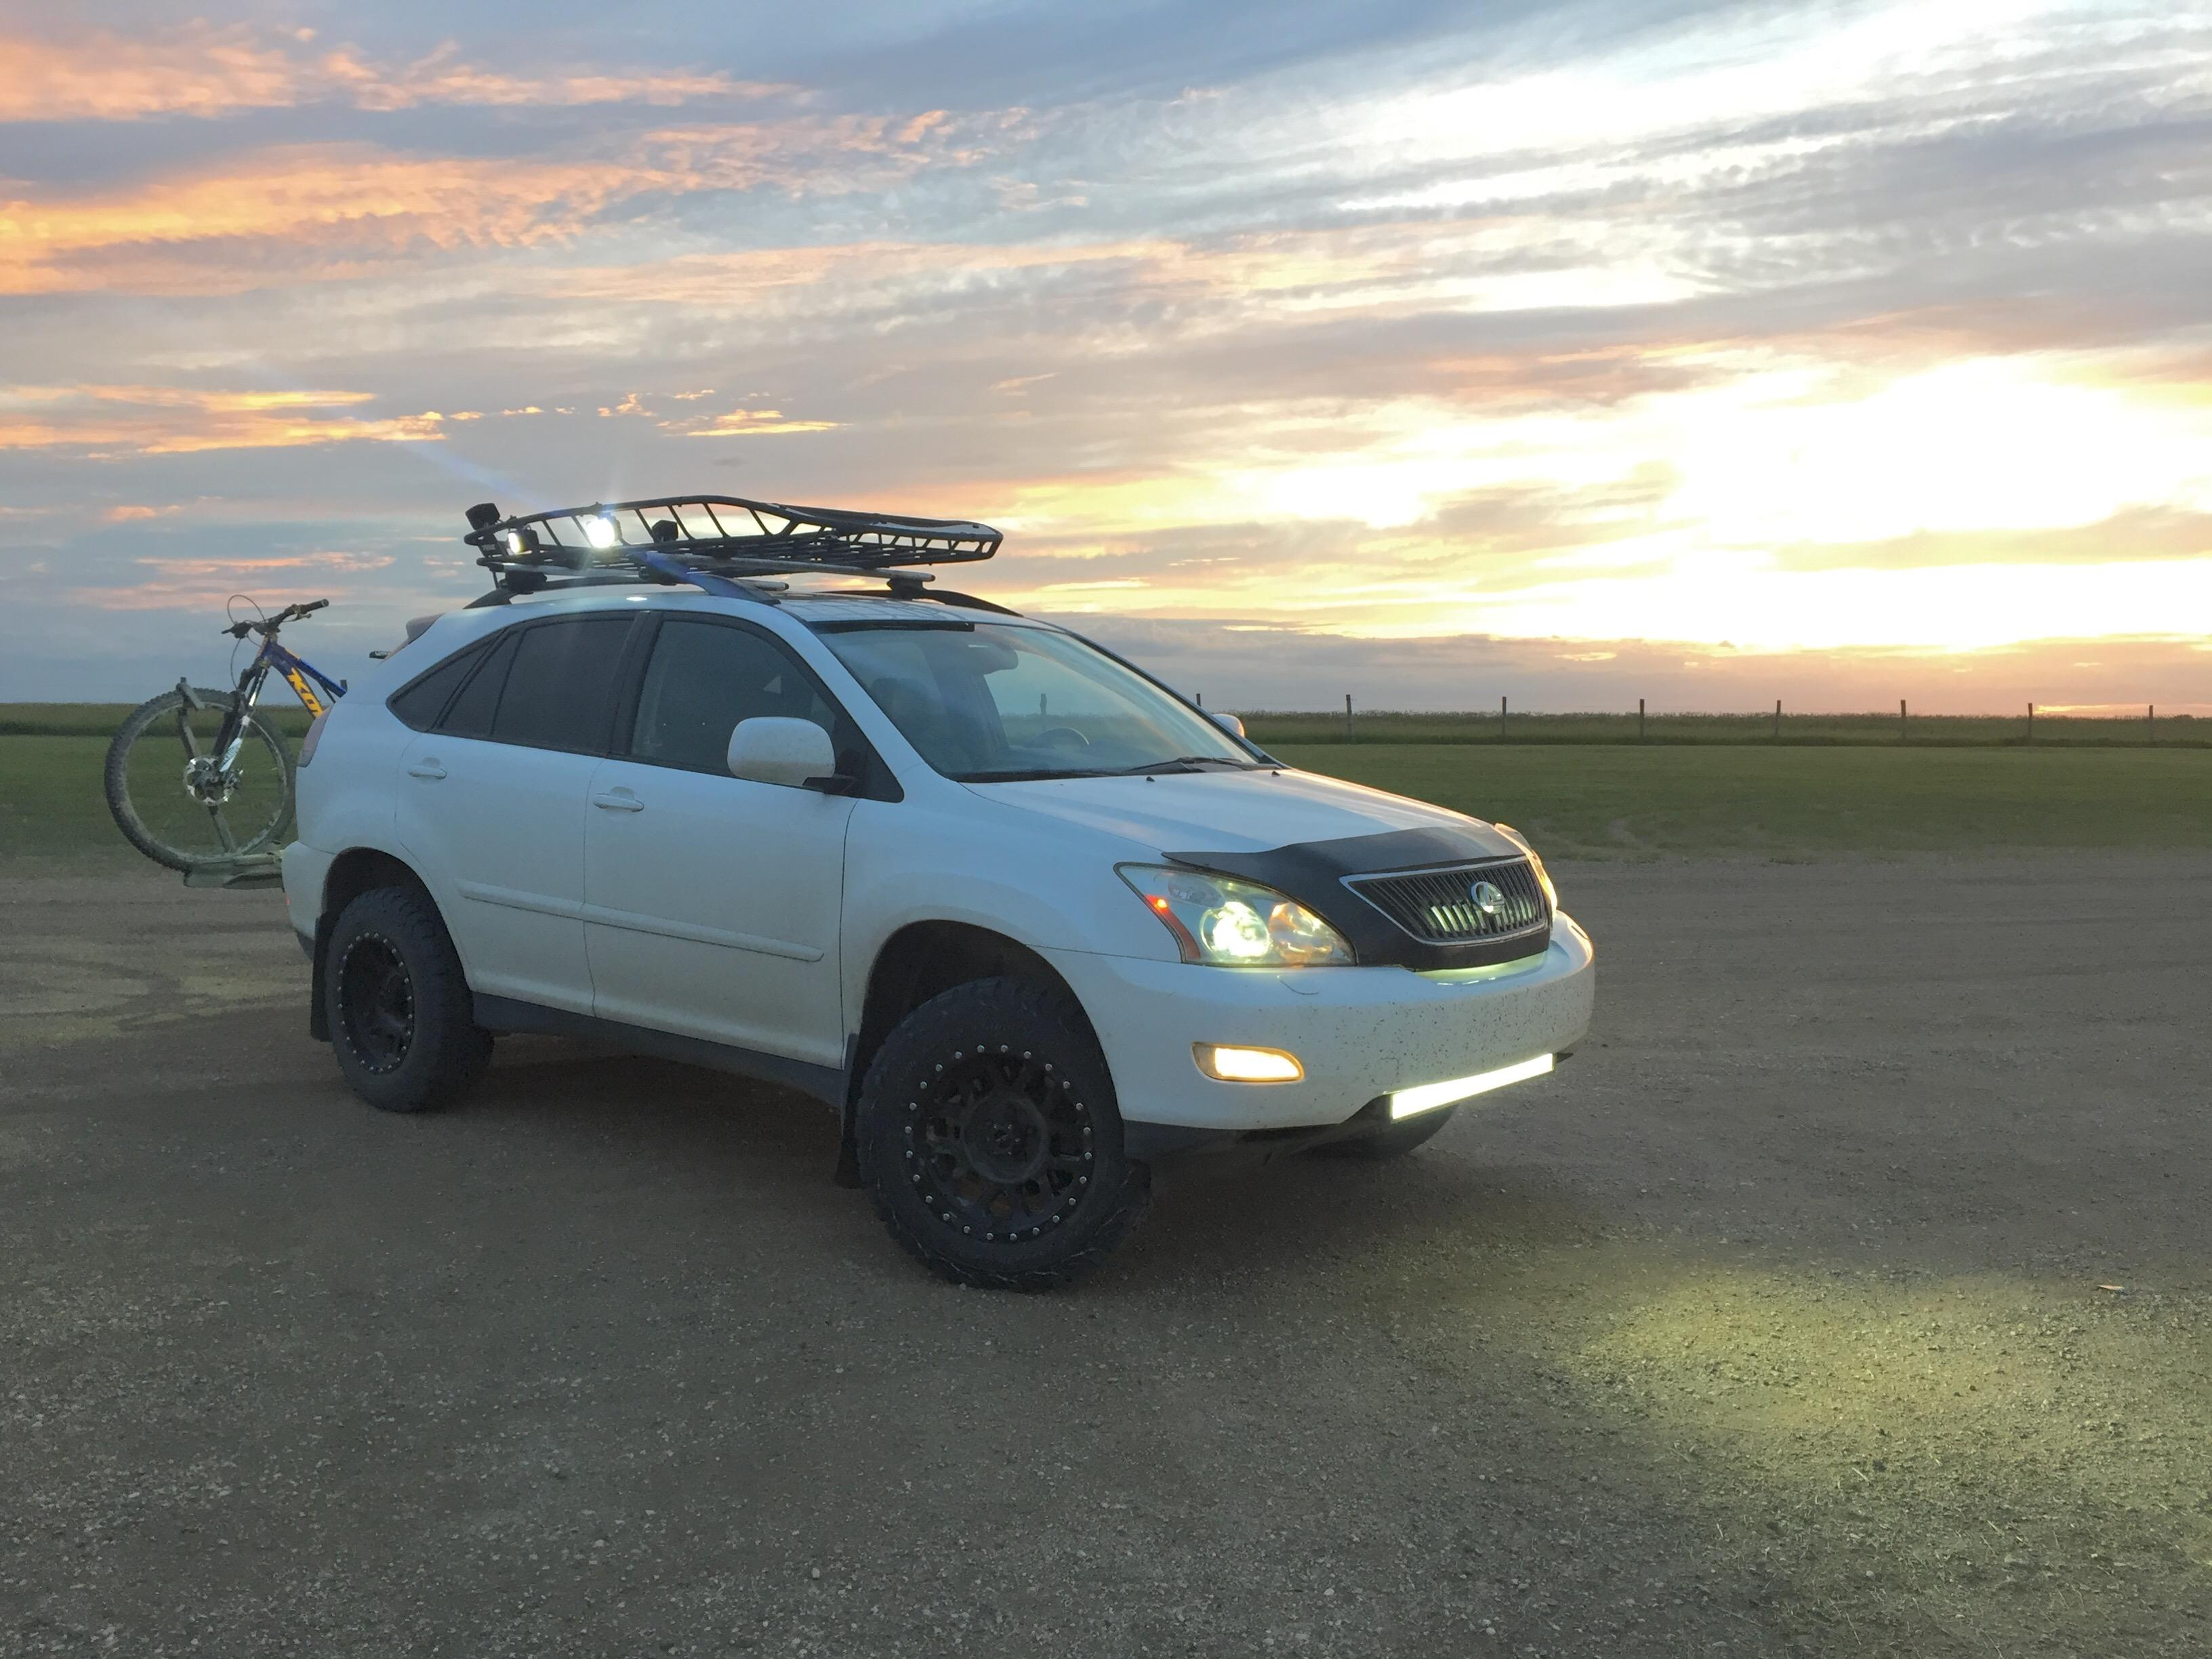 Lifted Rx330 2 5 Actual Suspension Lift 04 09 Lexus Rx330 Rx350 Rx400h Lexus Owners Club Of North America